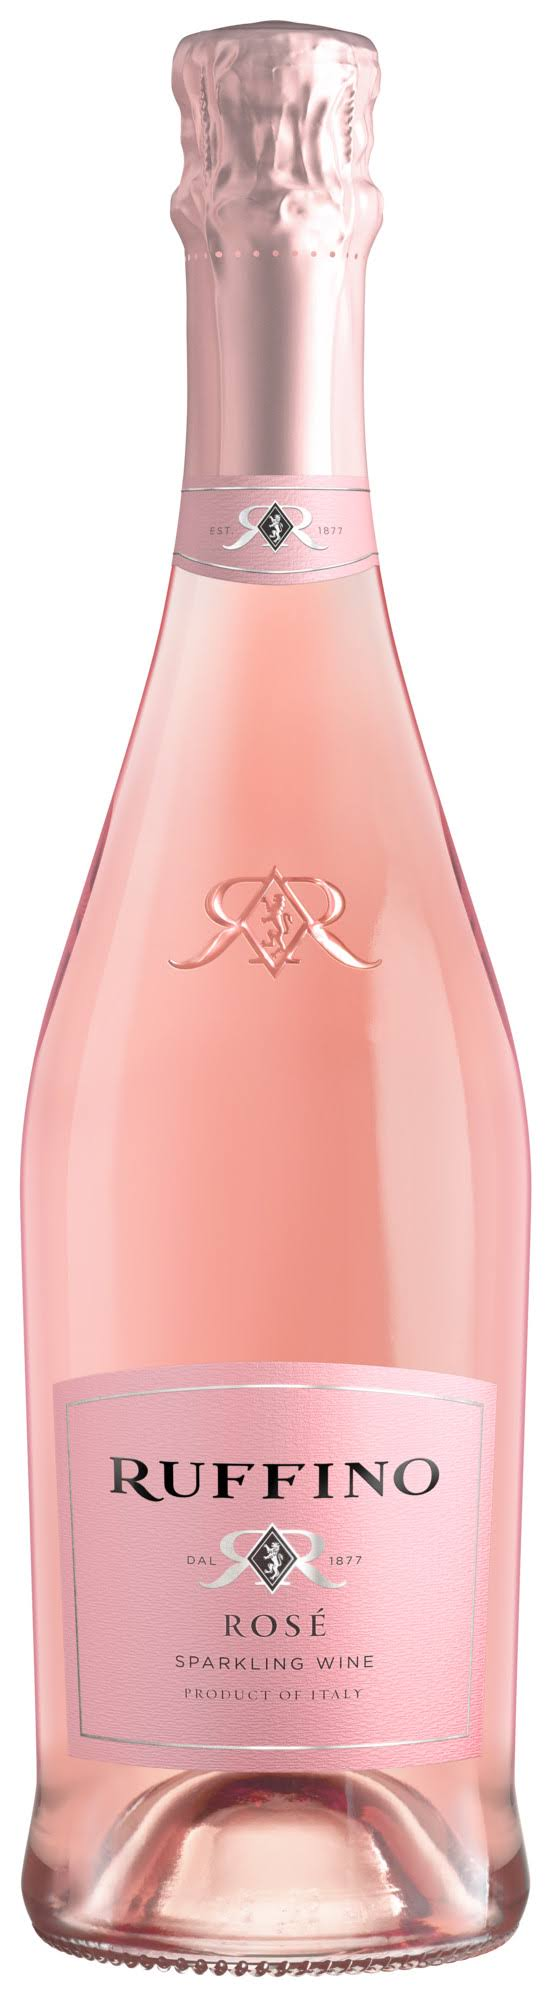 Ruffino Rose, Sparkling Wine - 750 ml